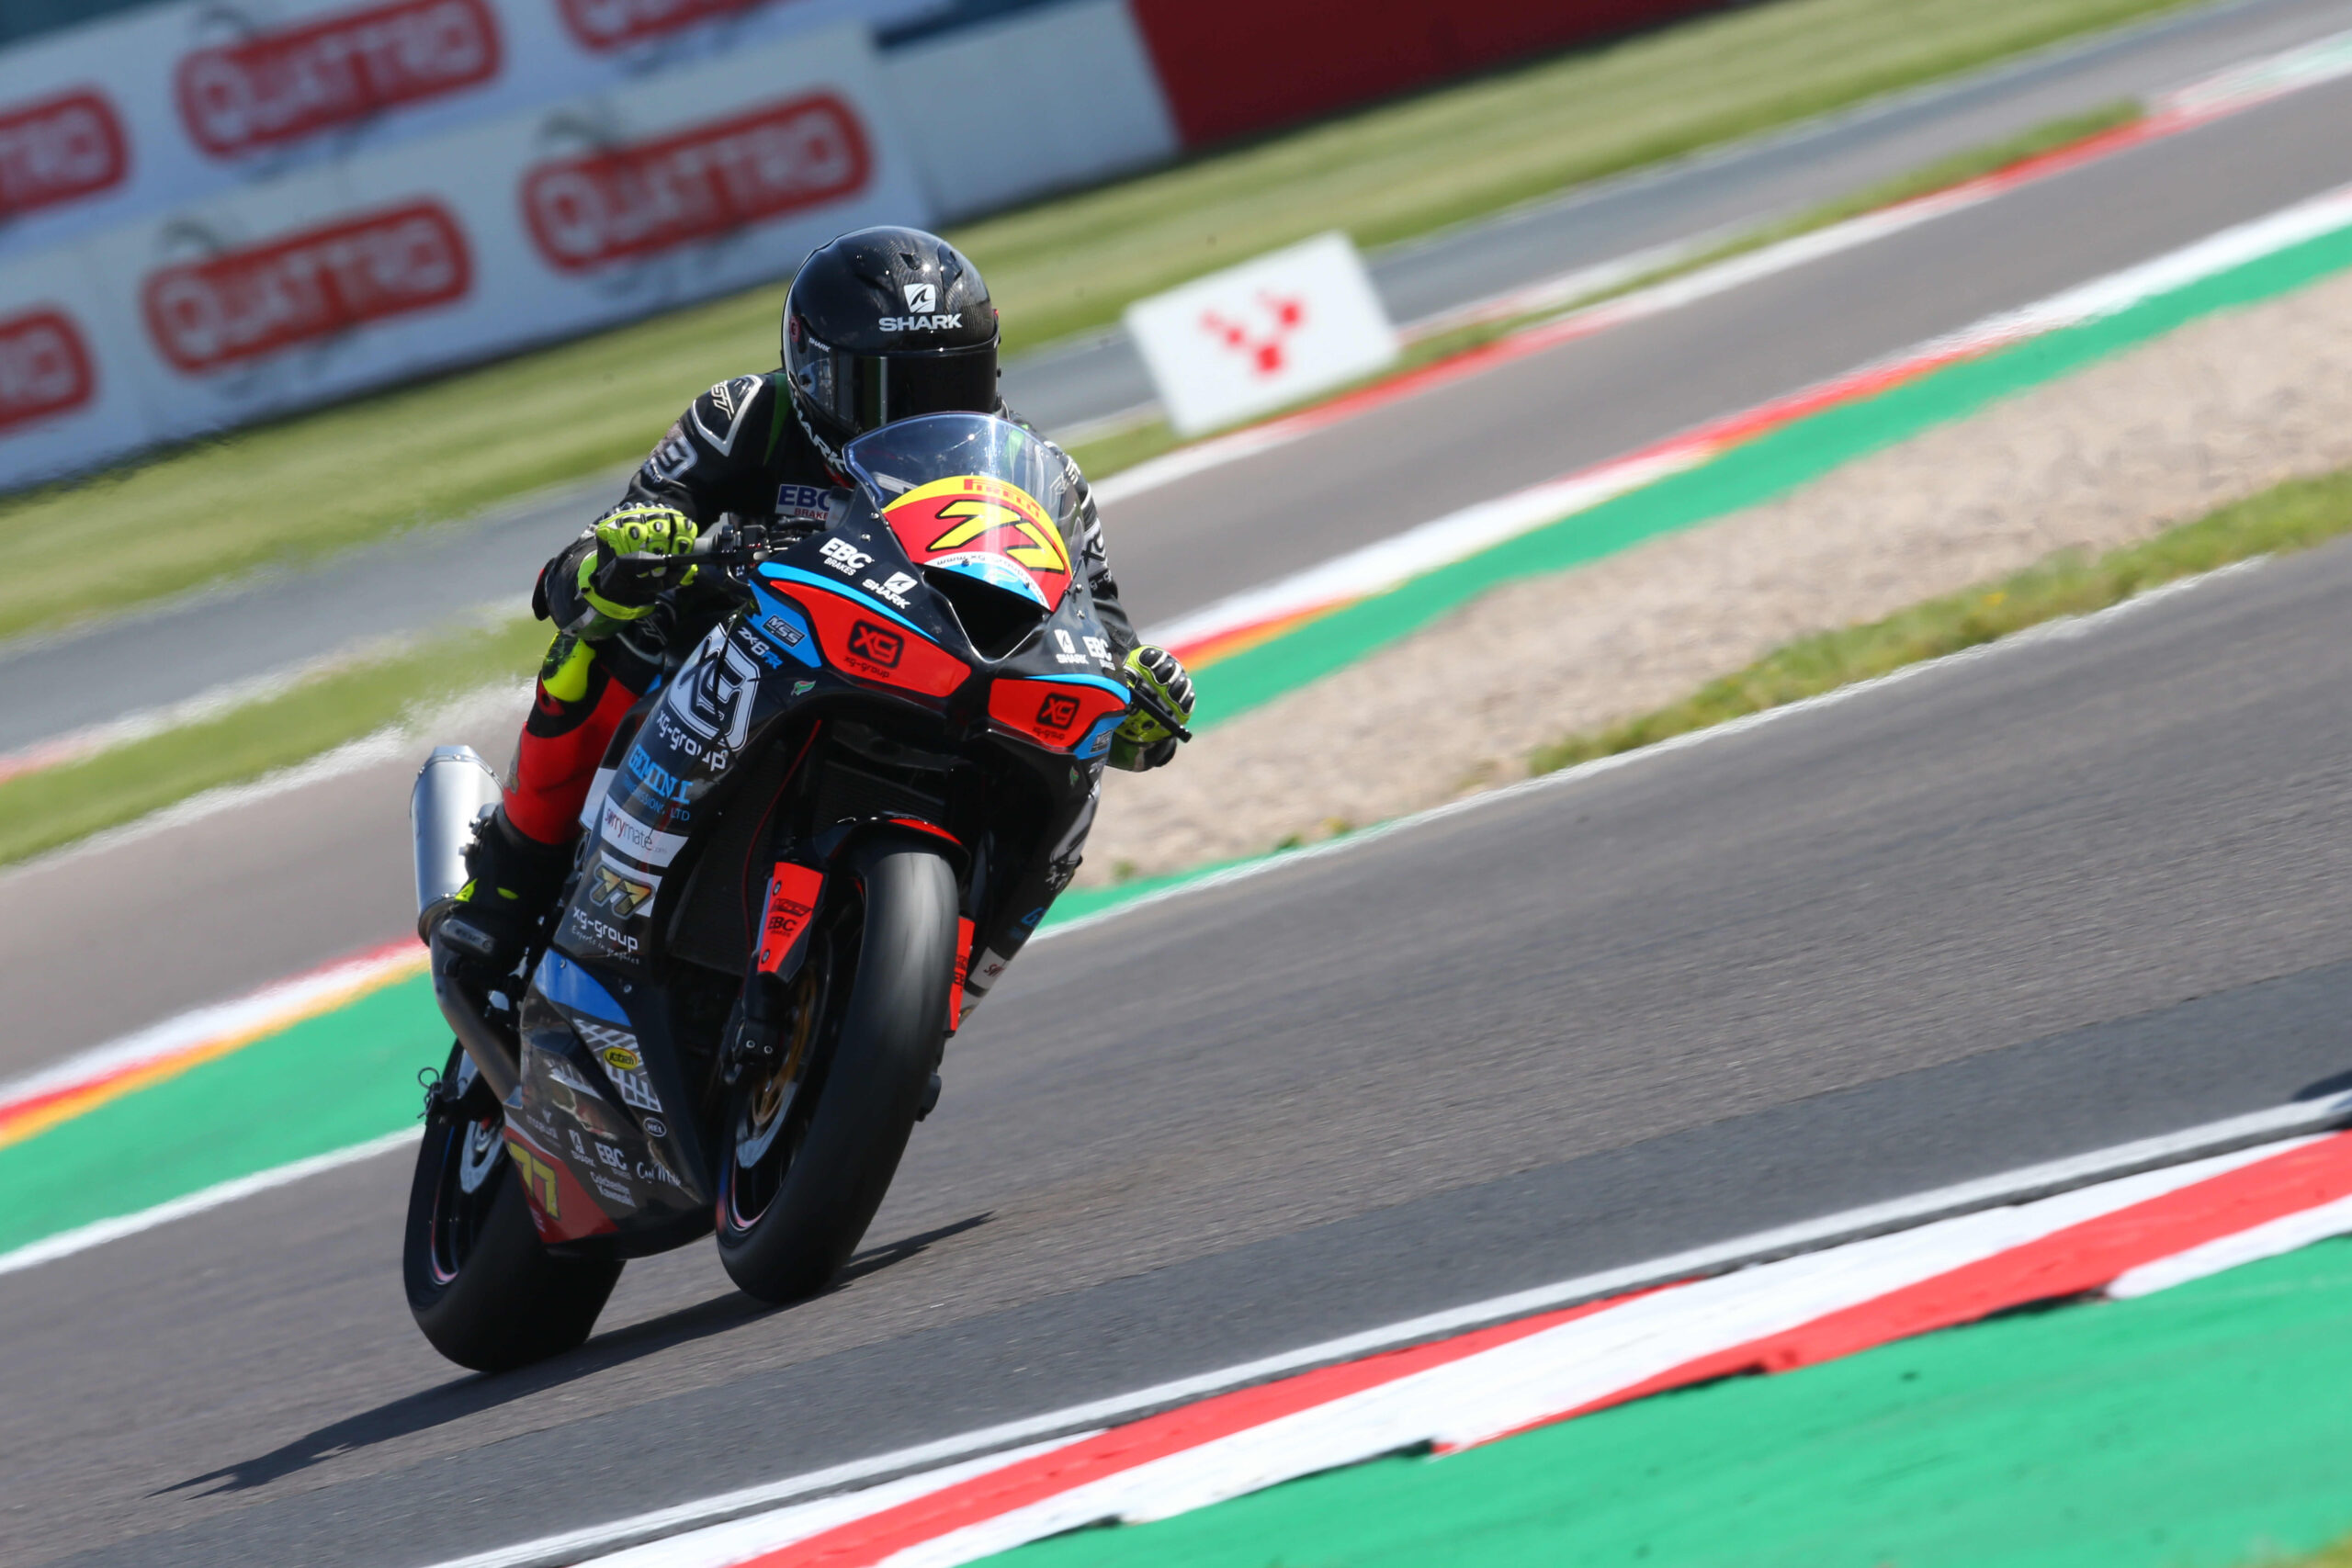 KADE VERWEY HAPPY WITH RACE-LEADING PACE AT DONINGTON PARK